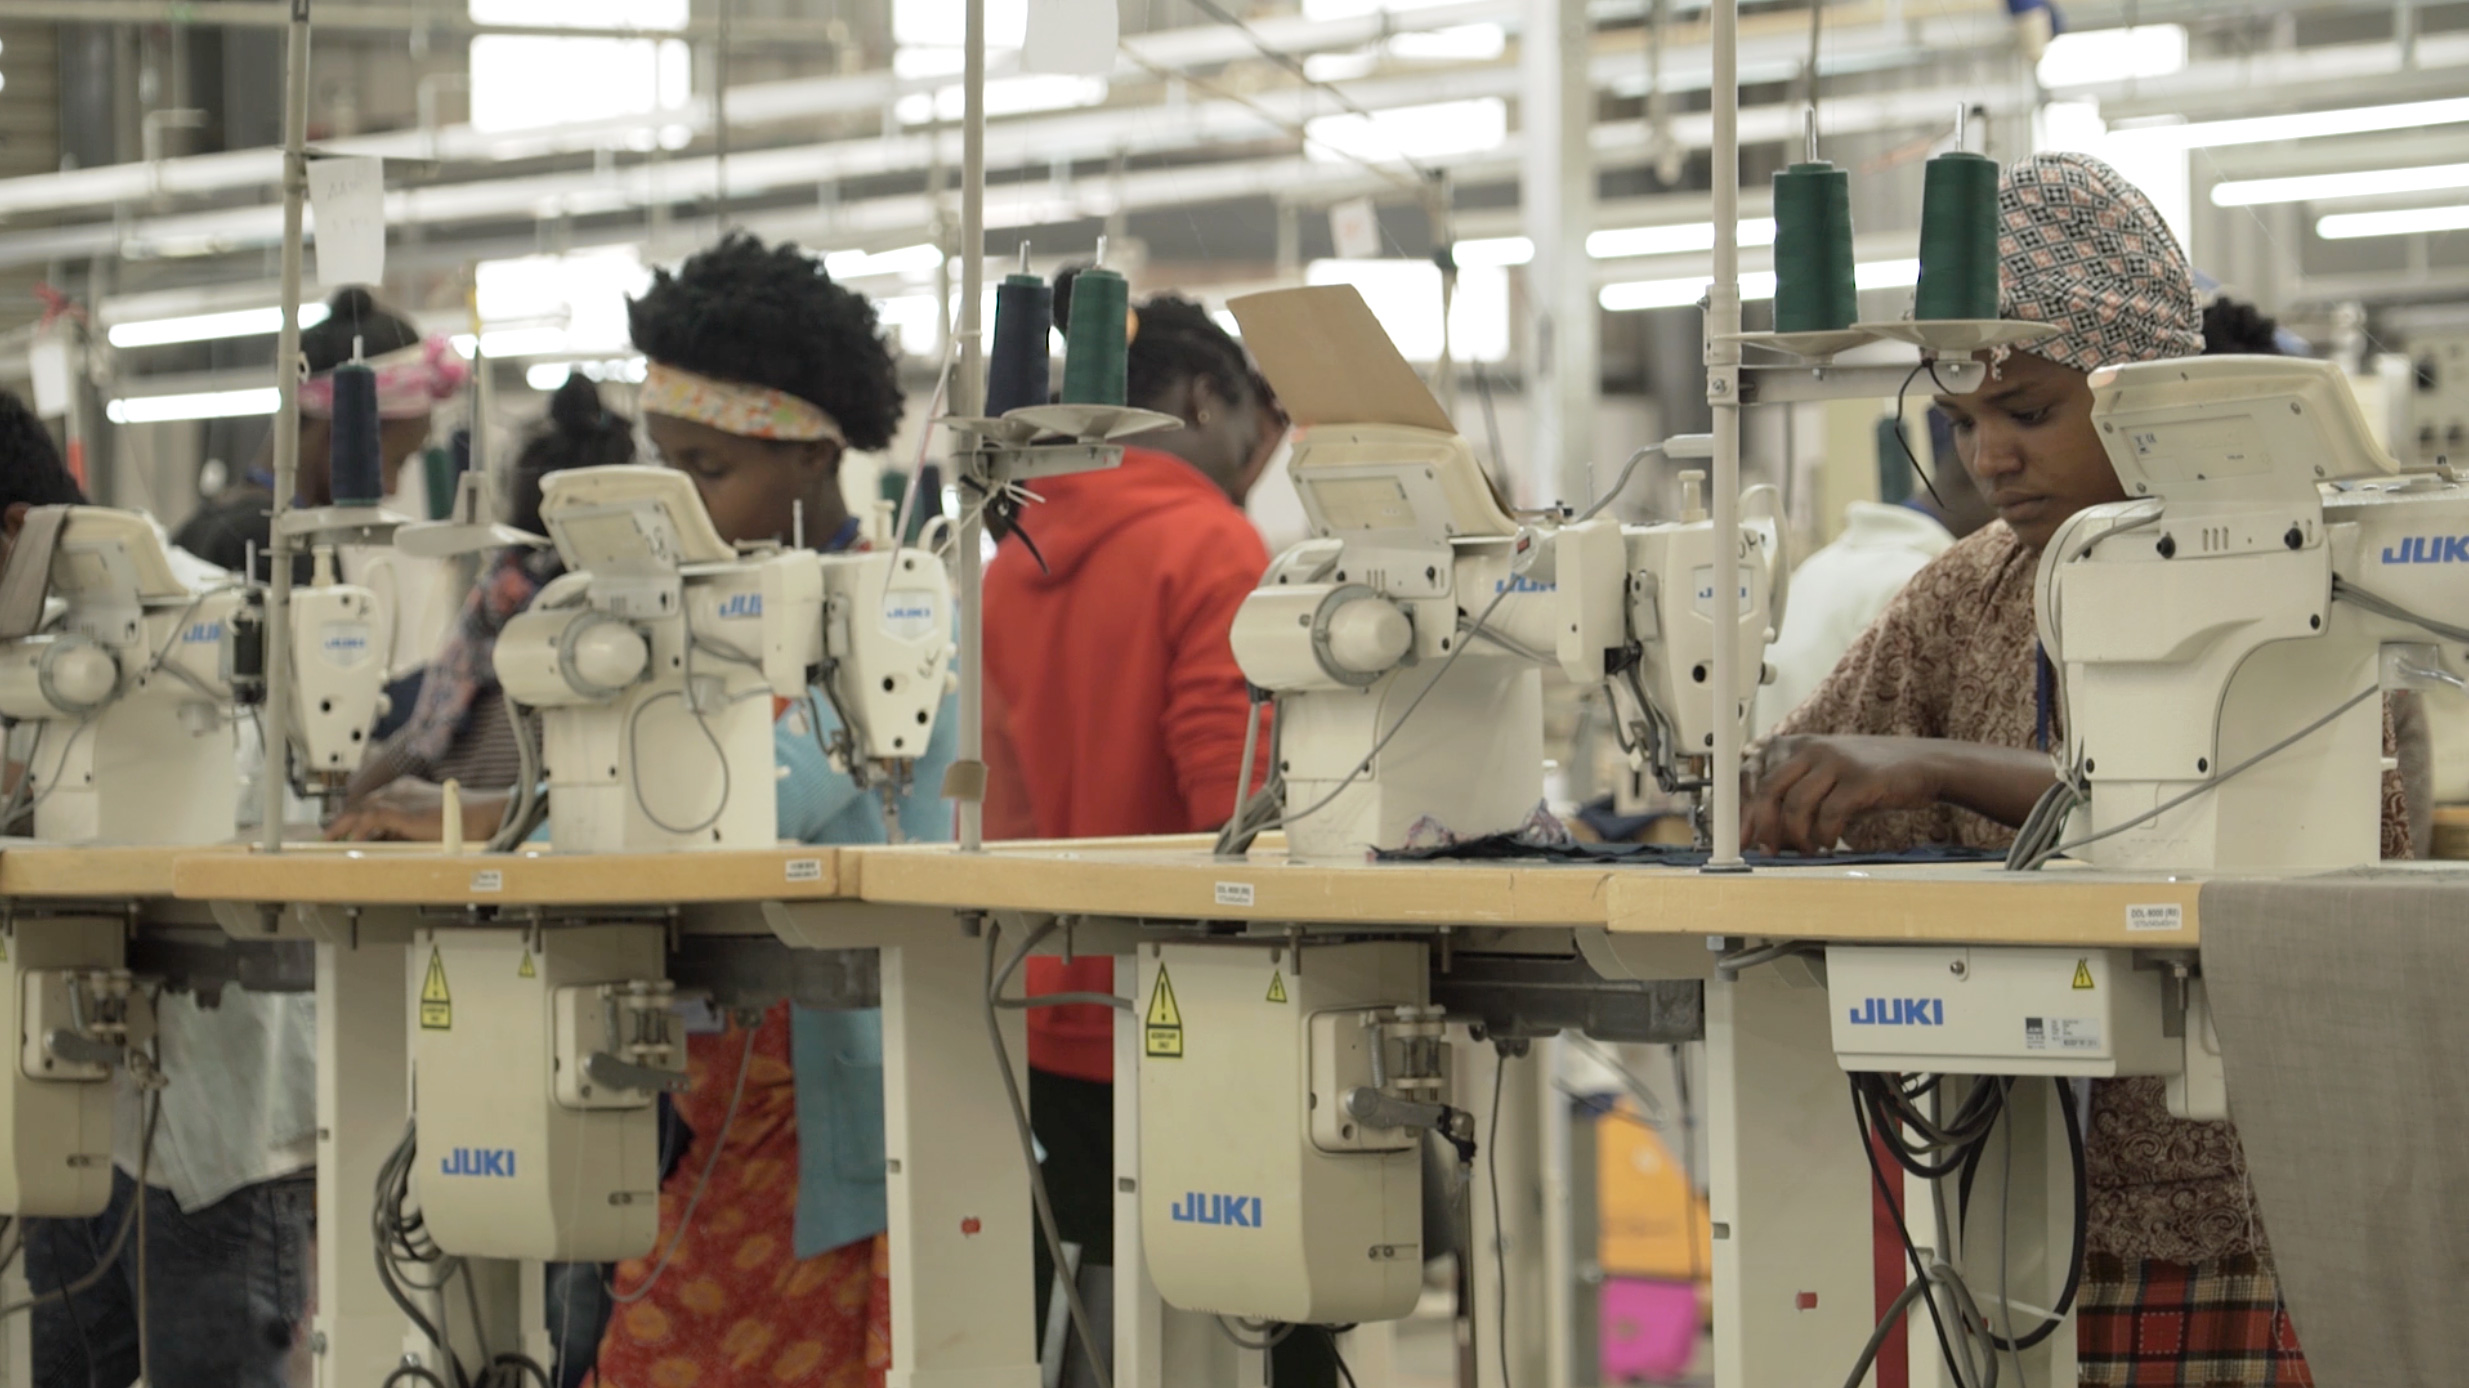 Ethiopia Touts Good Conditions in Factories for Brands Like H&M and